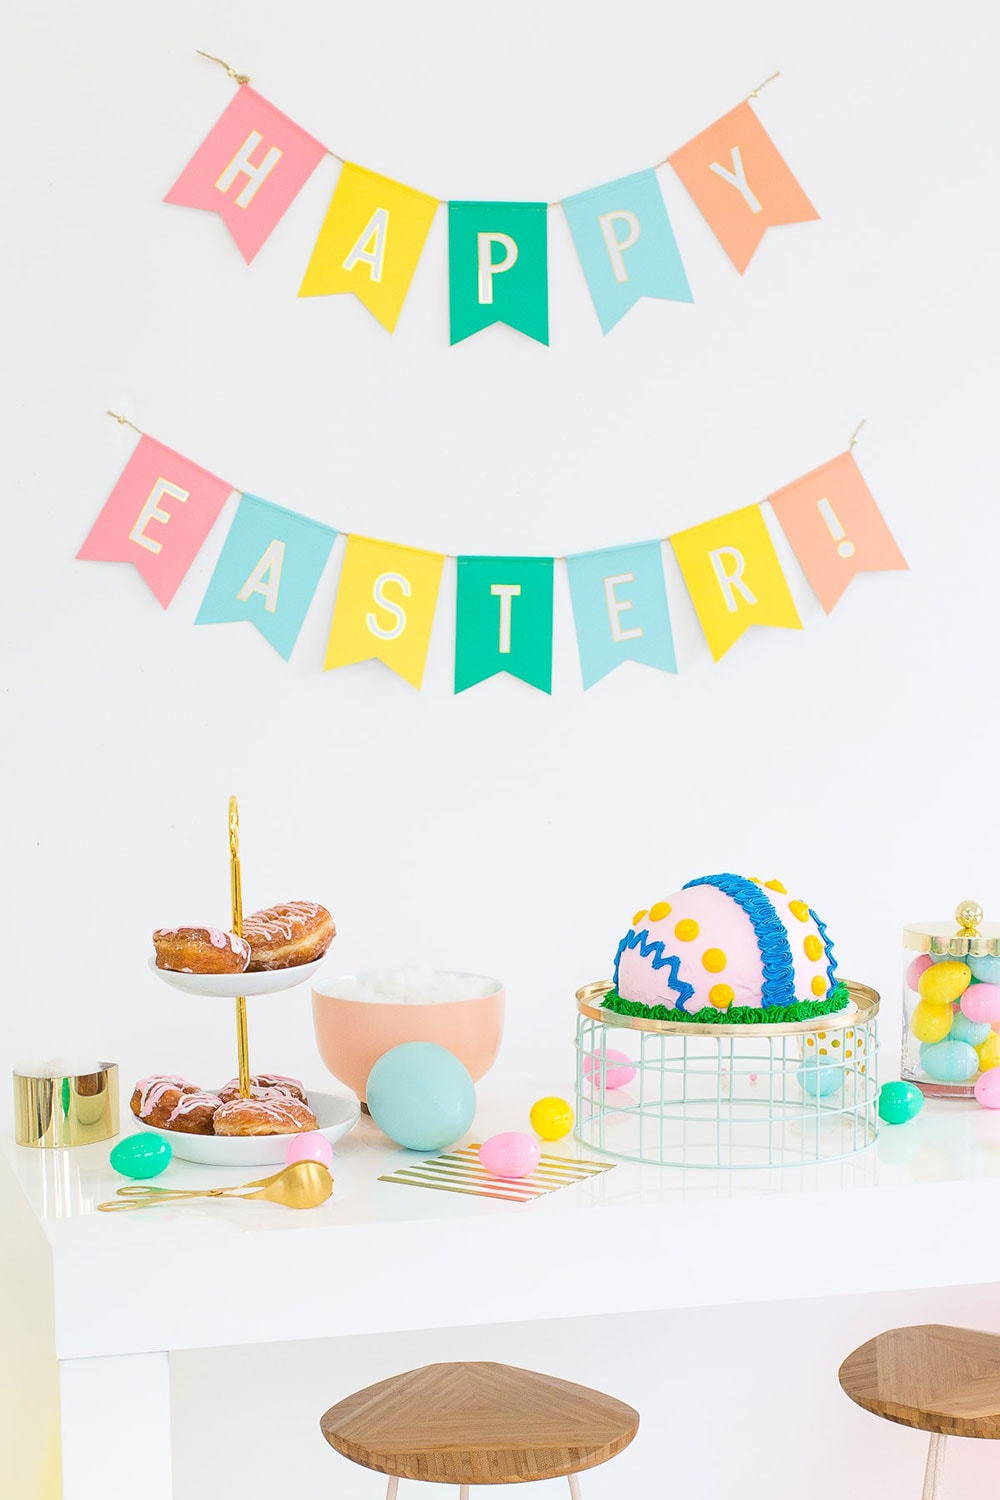 Table full of Easter eggs and sweets to illustrate the best vegan Easter recipes